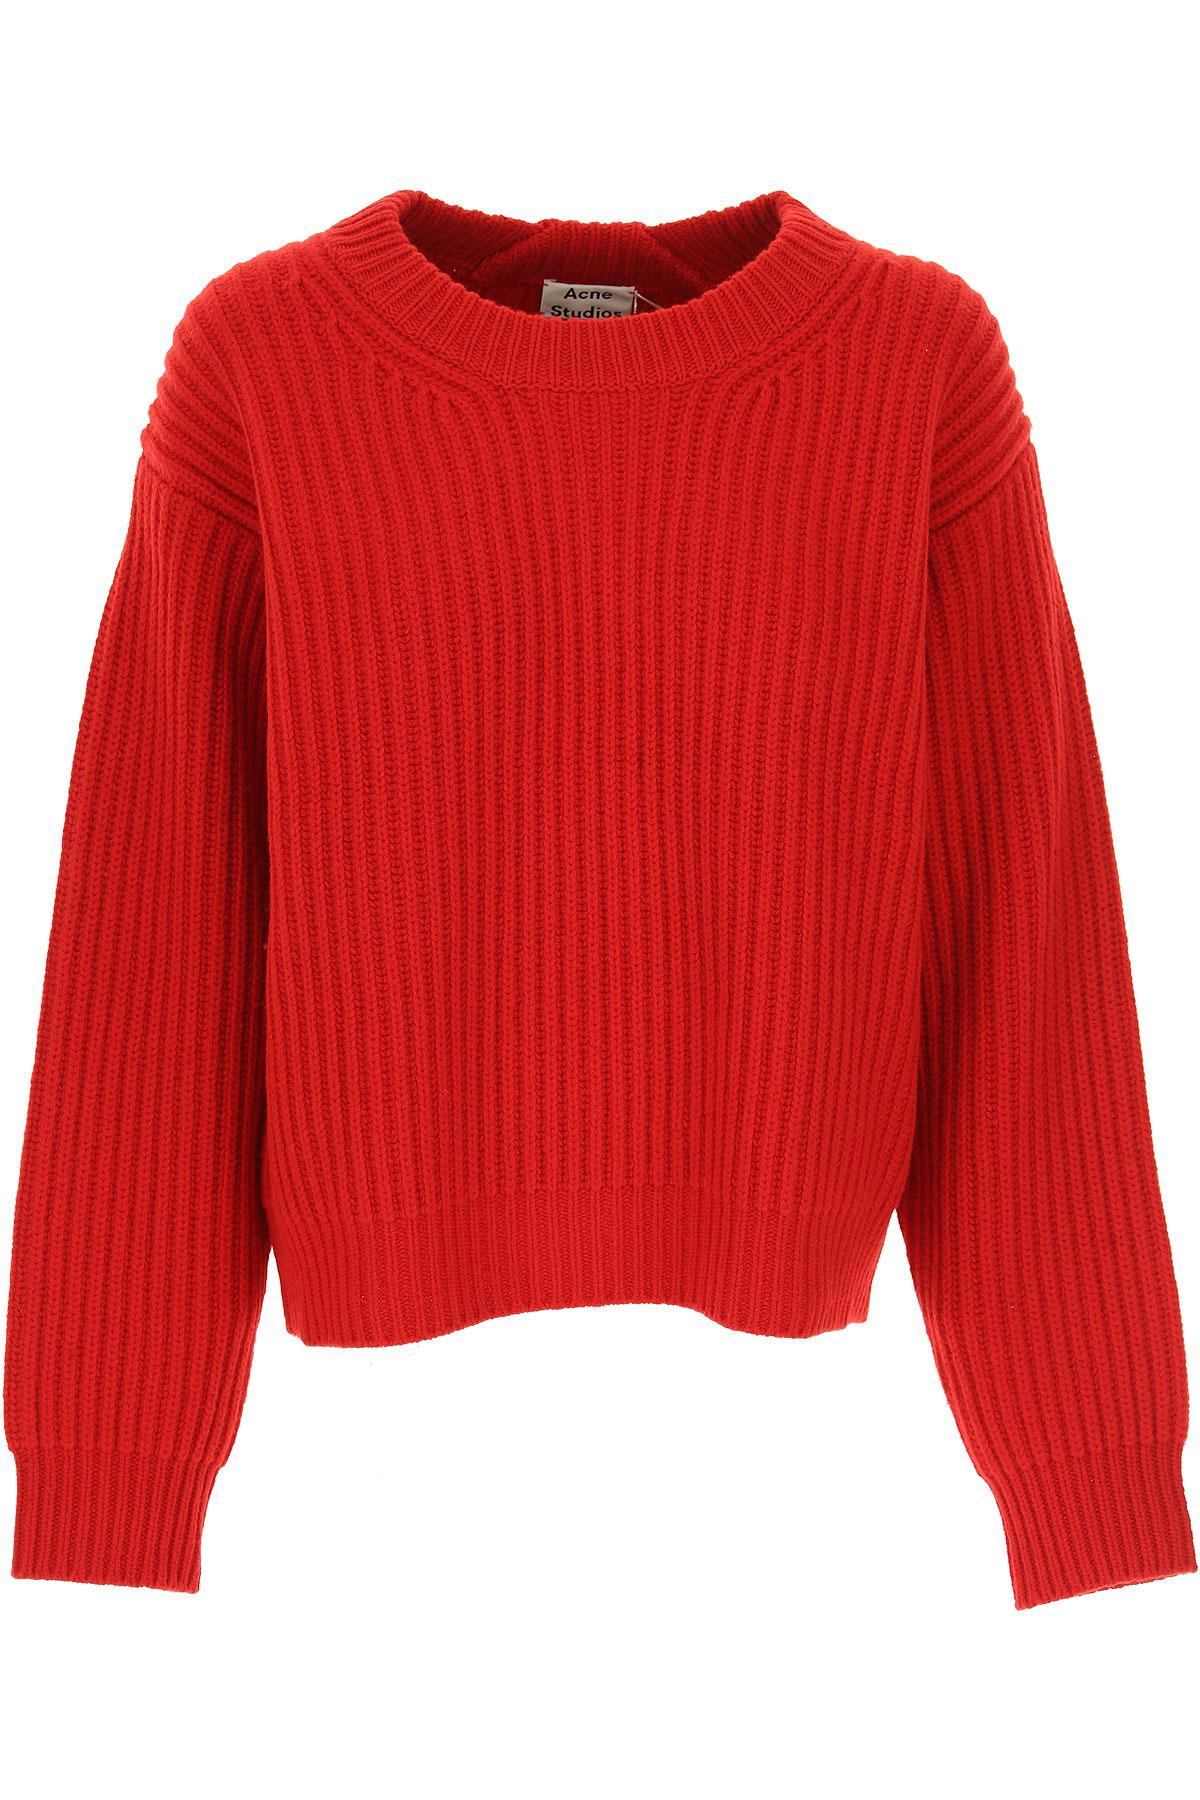 bc9560193c Acne Studios Sweater For Women Jumper in Red - Lyst